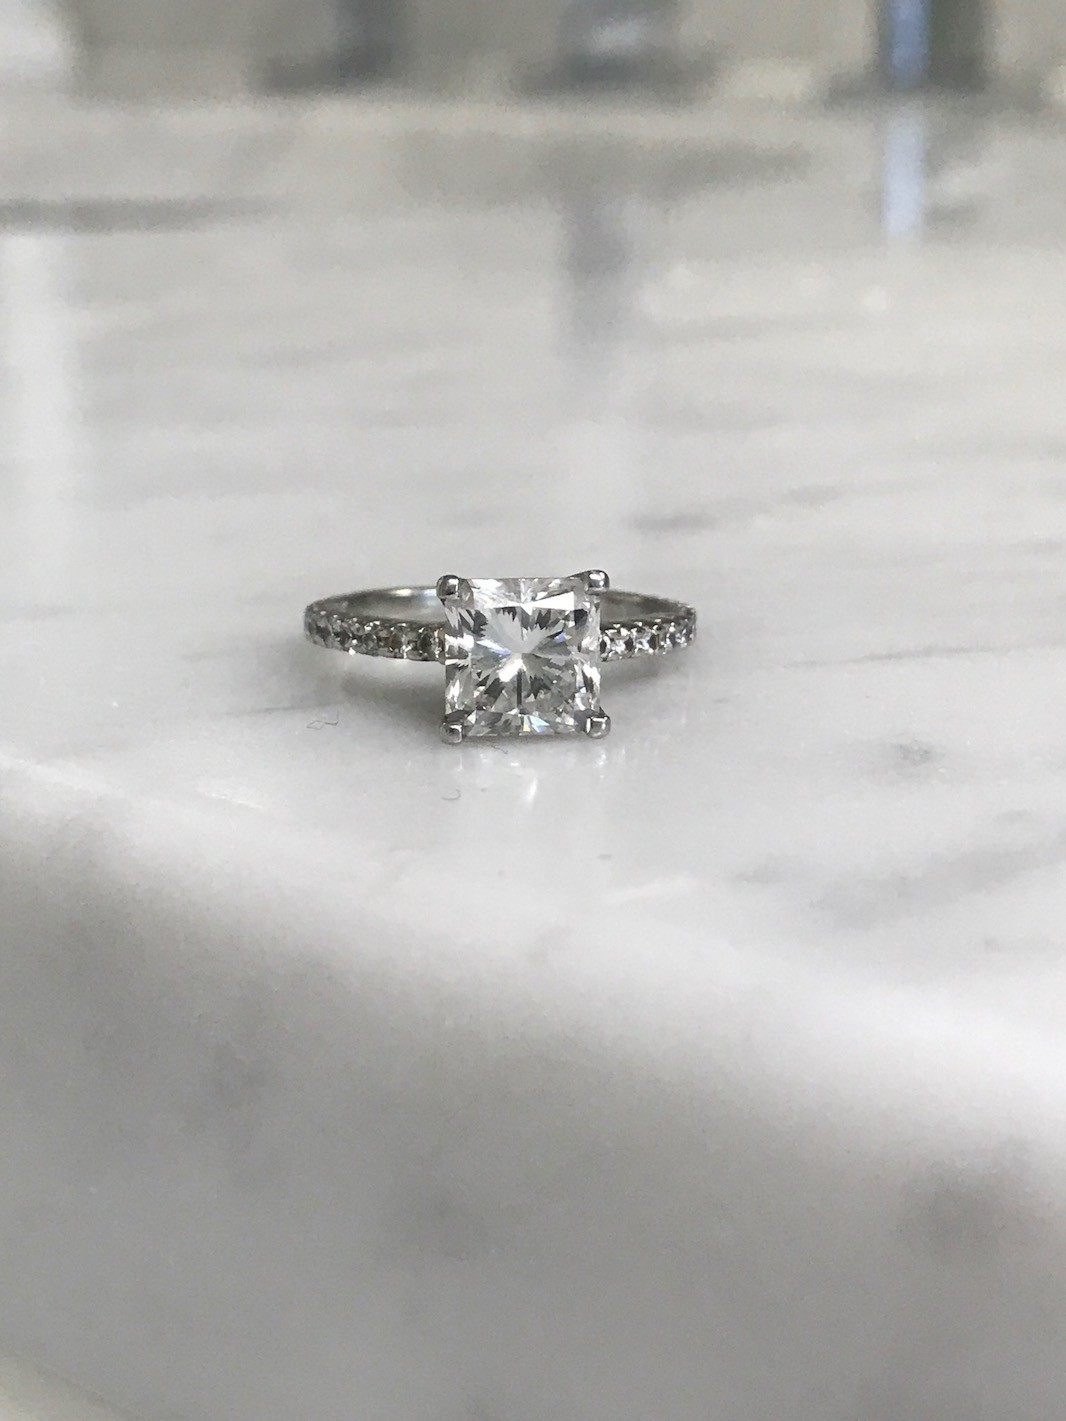 GIA 2 Carat VS1 F Radiant Diamond Ring, Platinum Diamond band.